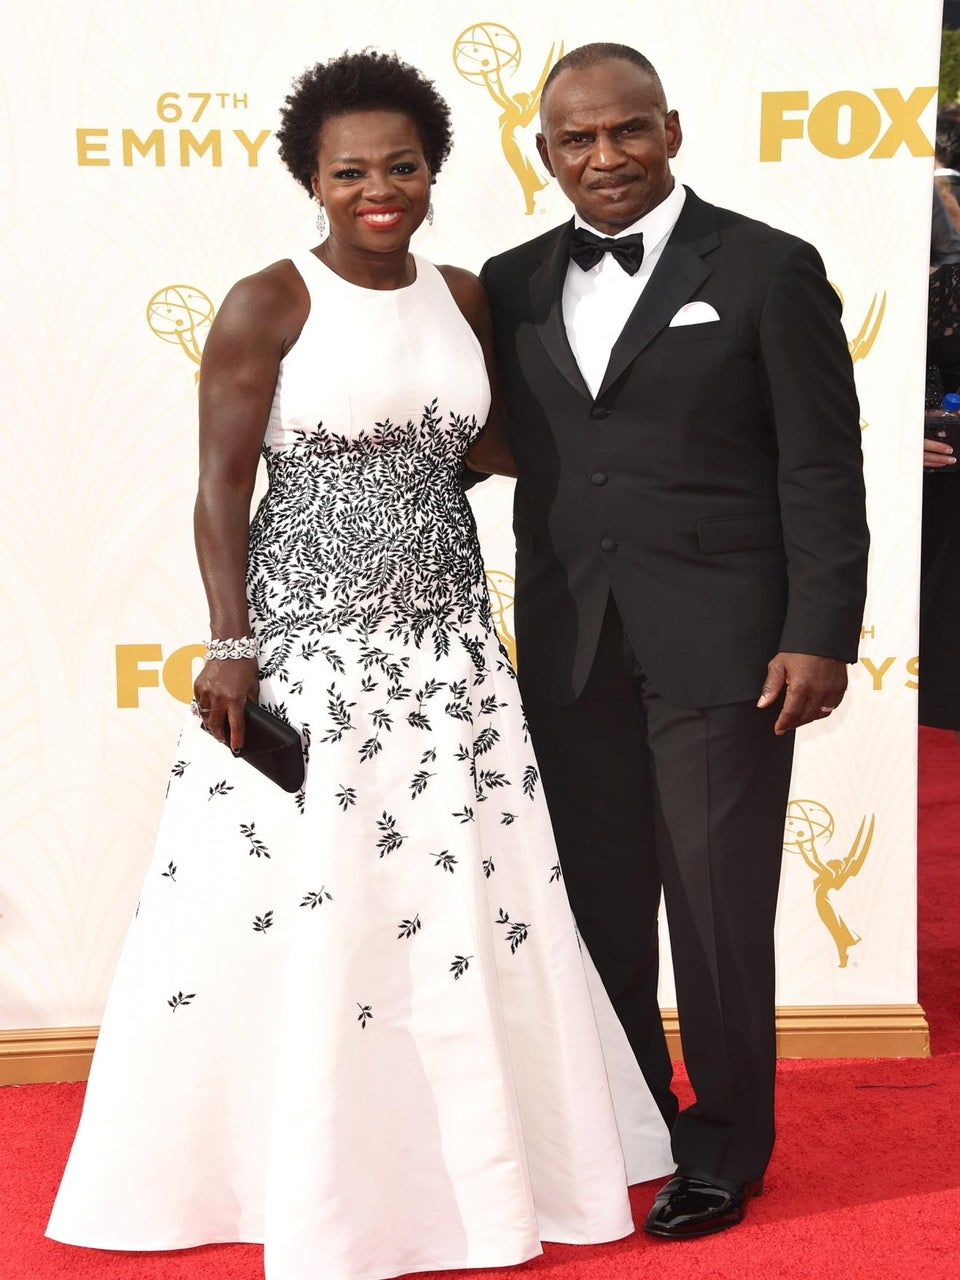 Viola Davis Makes History! Wins Emmy for Lead Actress in a Drama